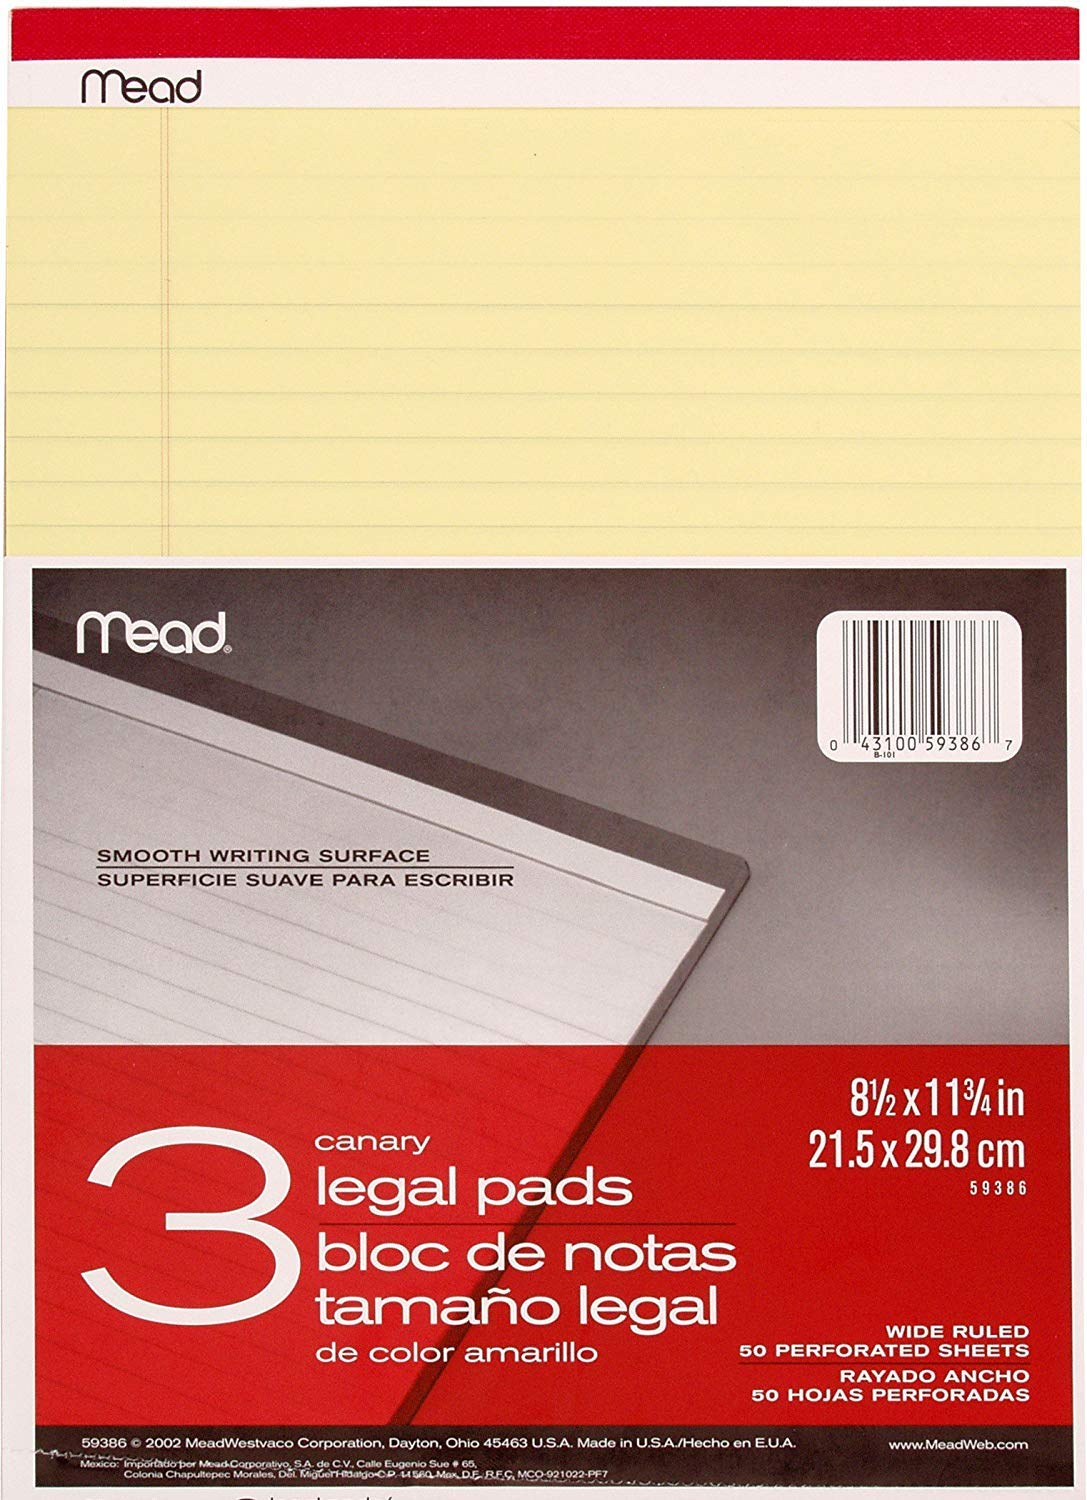 Mead Canary Legal Pads, 8.5 X 11.75 Inches, 6 Pack, 50 Sheets (59386)